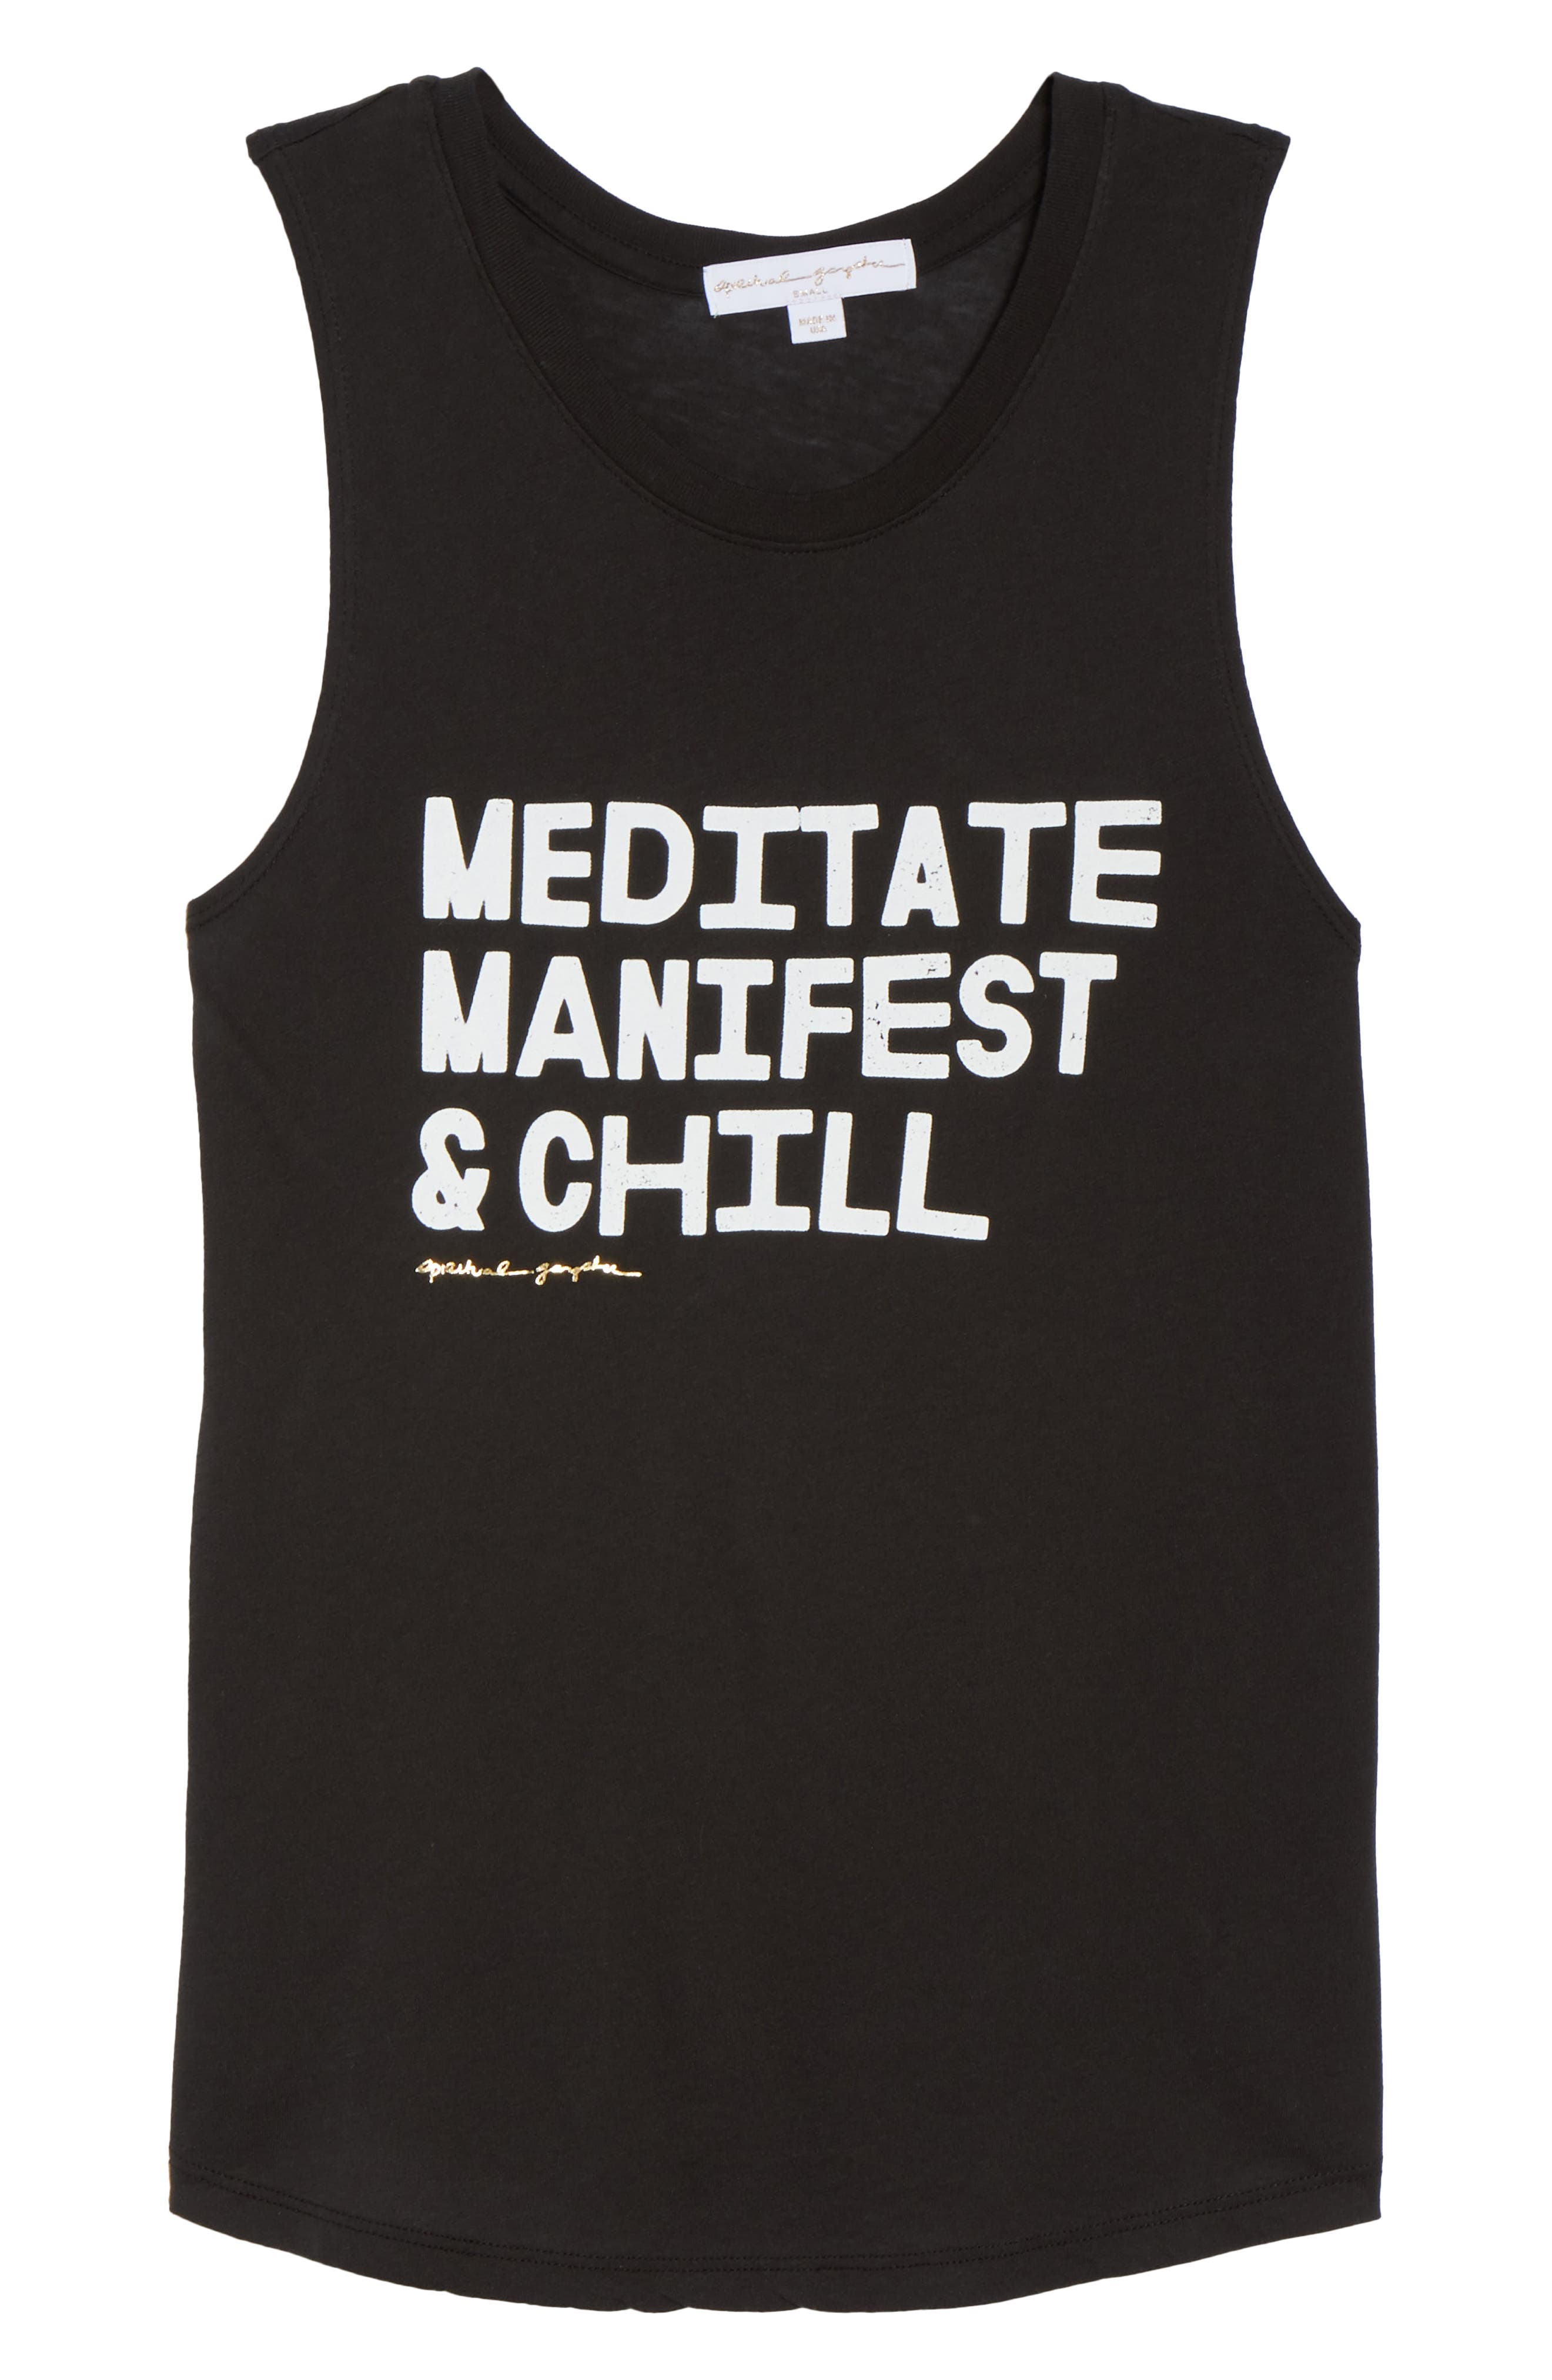 Meditate, Manifest & Chill Muscle Tee,                             Alternate thumbnail 6, color,                             Vntg Black